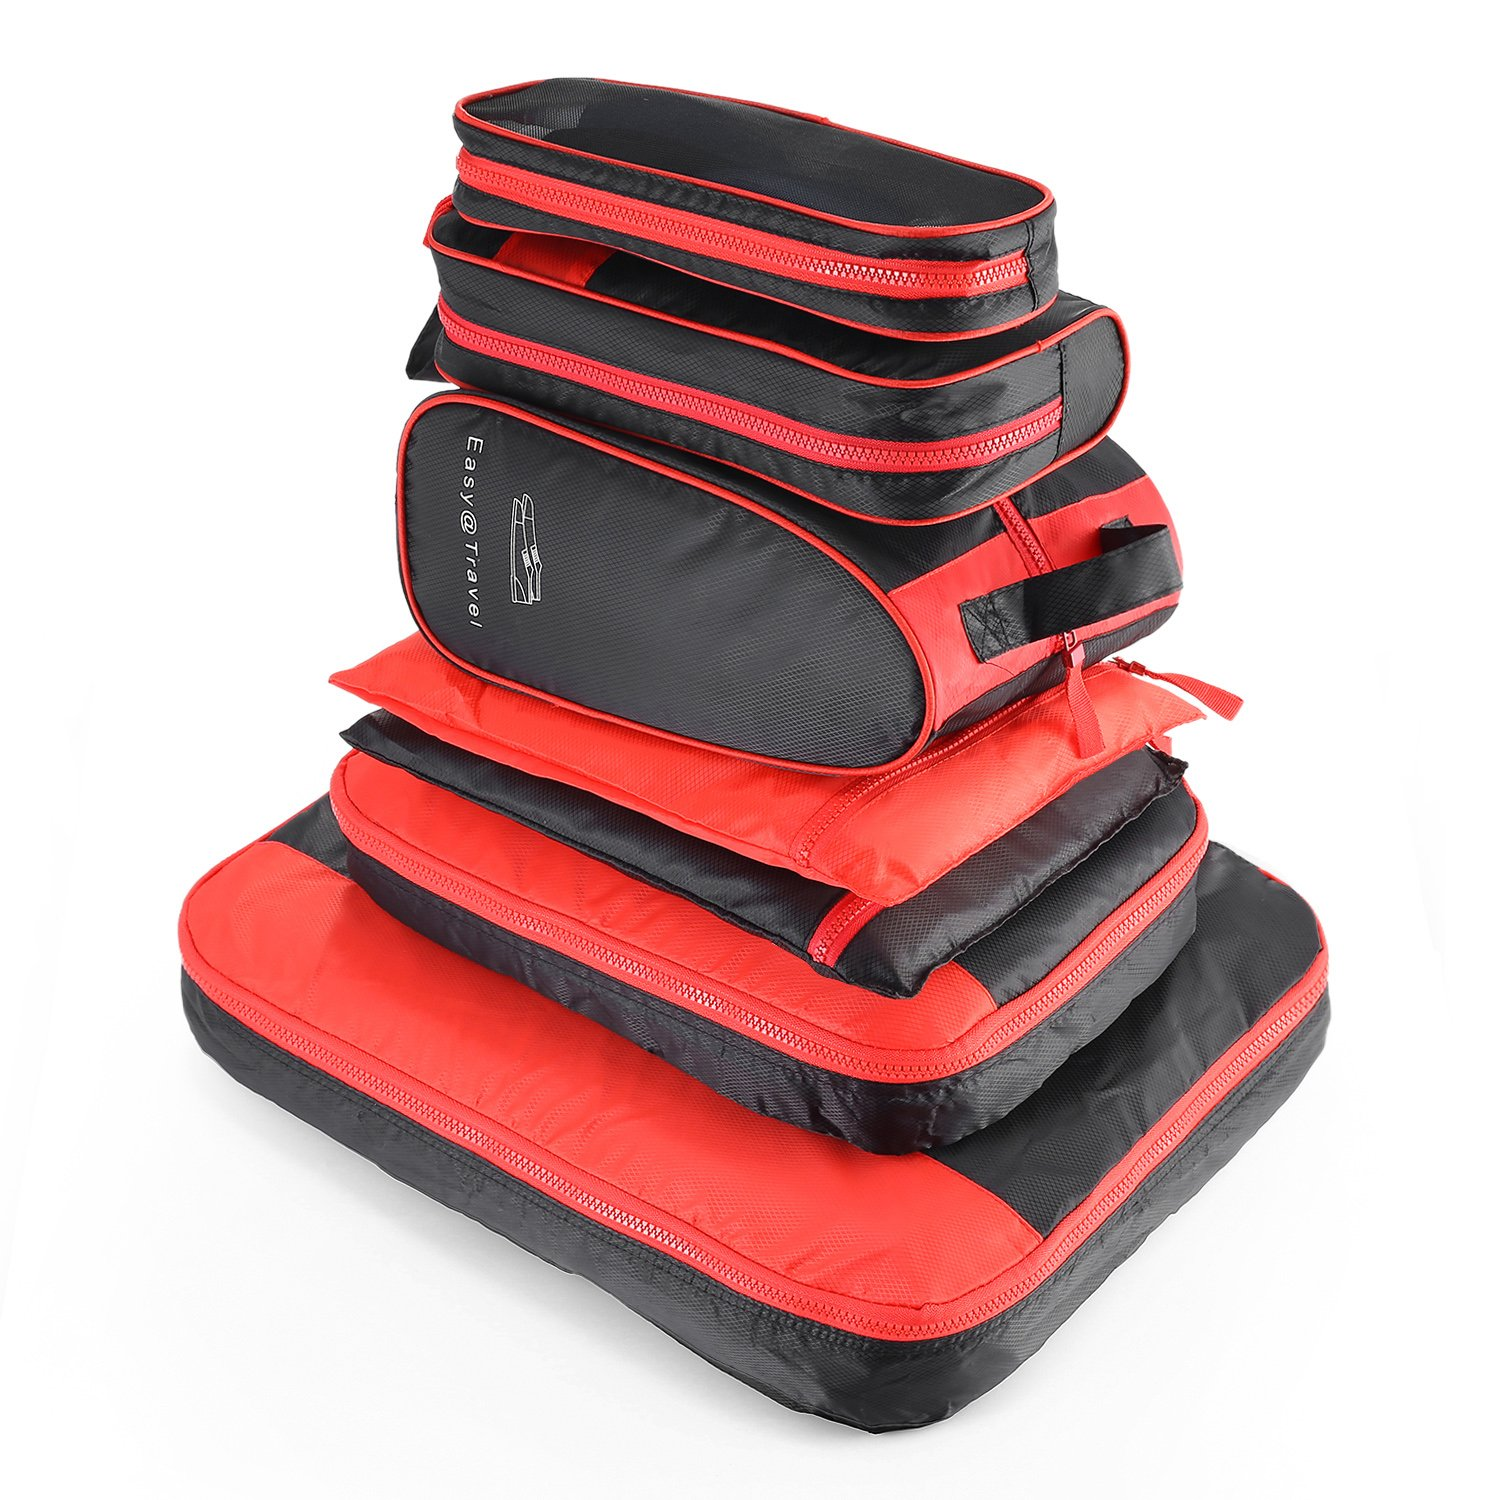 AIZBO 7 Set Waterproof Packing Cubes For Travel